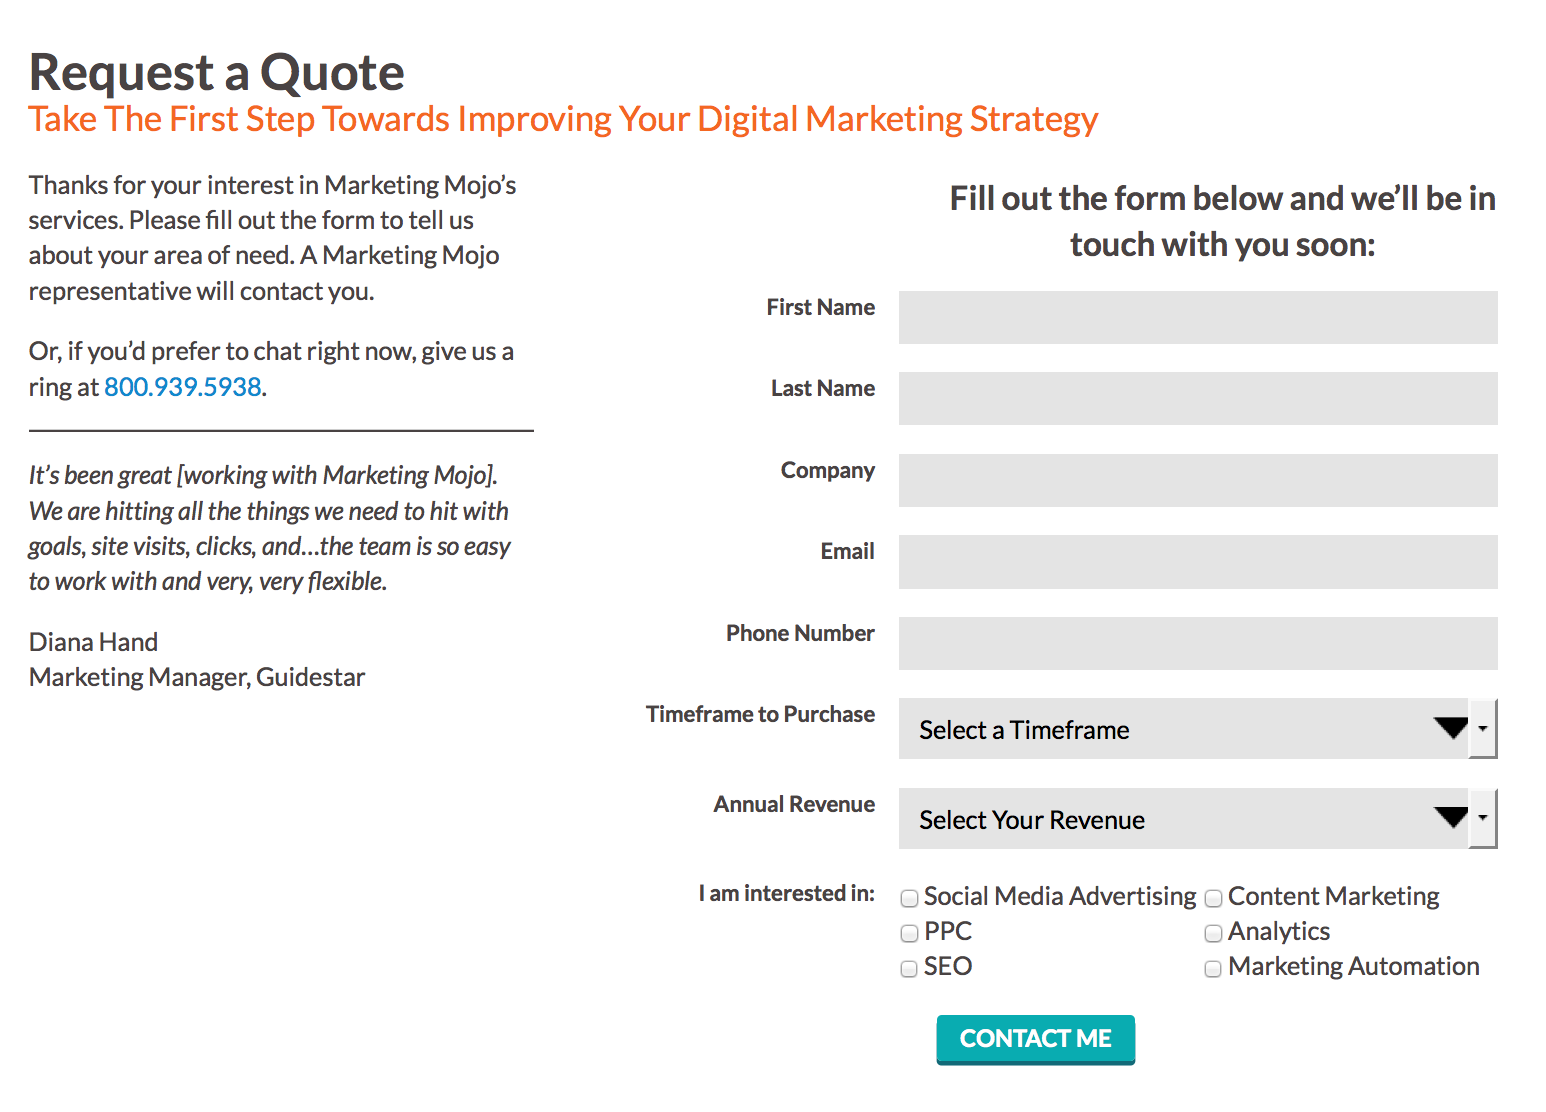 Request For Quote Keeping The Promise Starts With Your Call To Action  Marketing Mojo